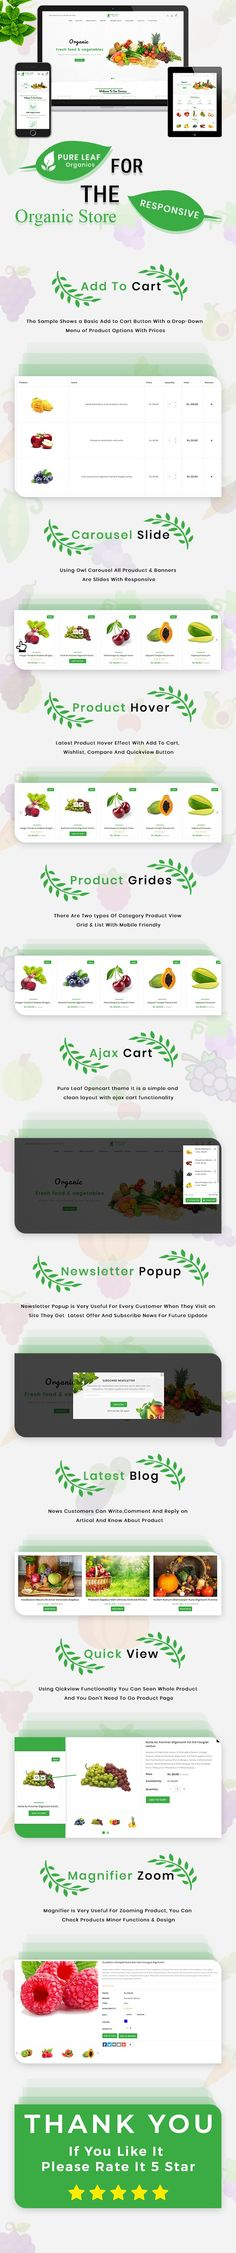 Pure Leaf Shopify MultiPurpose Responsive Theme - Shopify Website Builder - Build the Shopify Ecommerce site within 30 minutes. - Pure Leaf Shopify MultiPurpose Responsive Theme is a good choice for selling Ecommerce Website Design, Website Design Layout, Best Shopify Themes, News Web Design, Photoshop, Branding Your Business, Website Themes, Premium Wordpress Themes, Flower Food